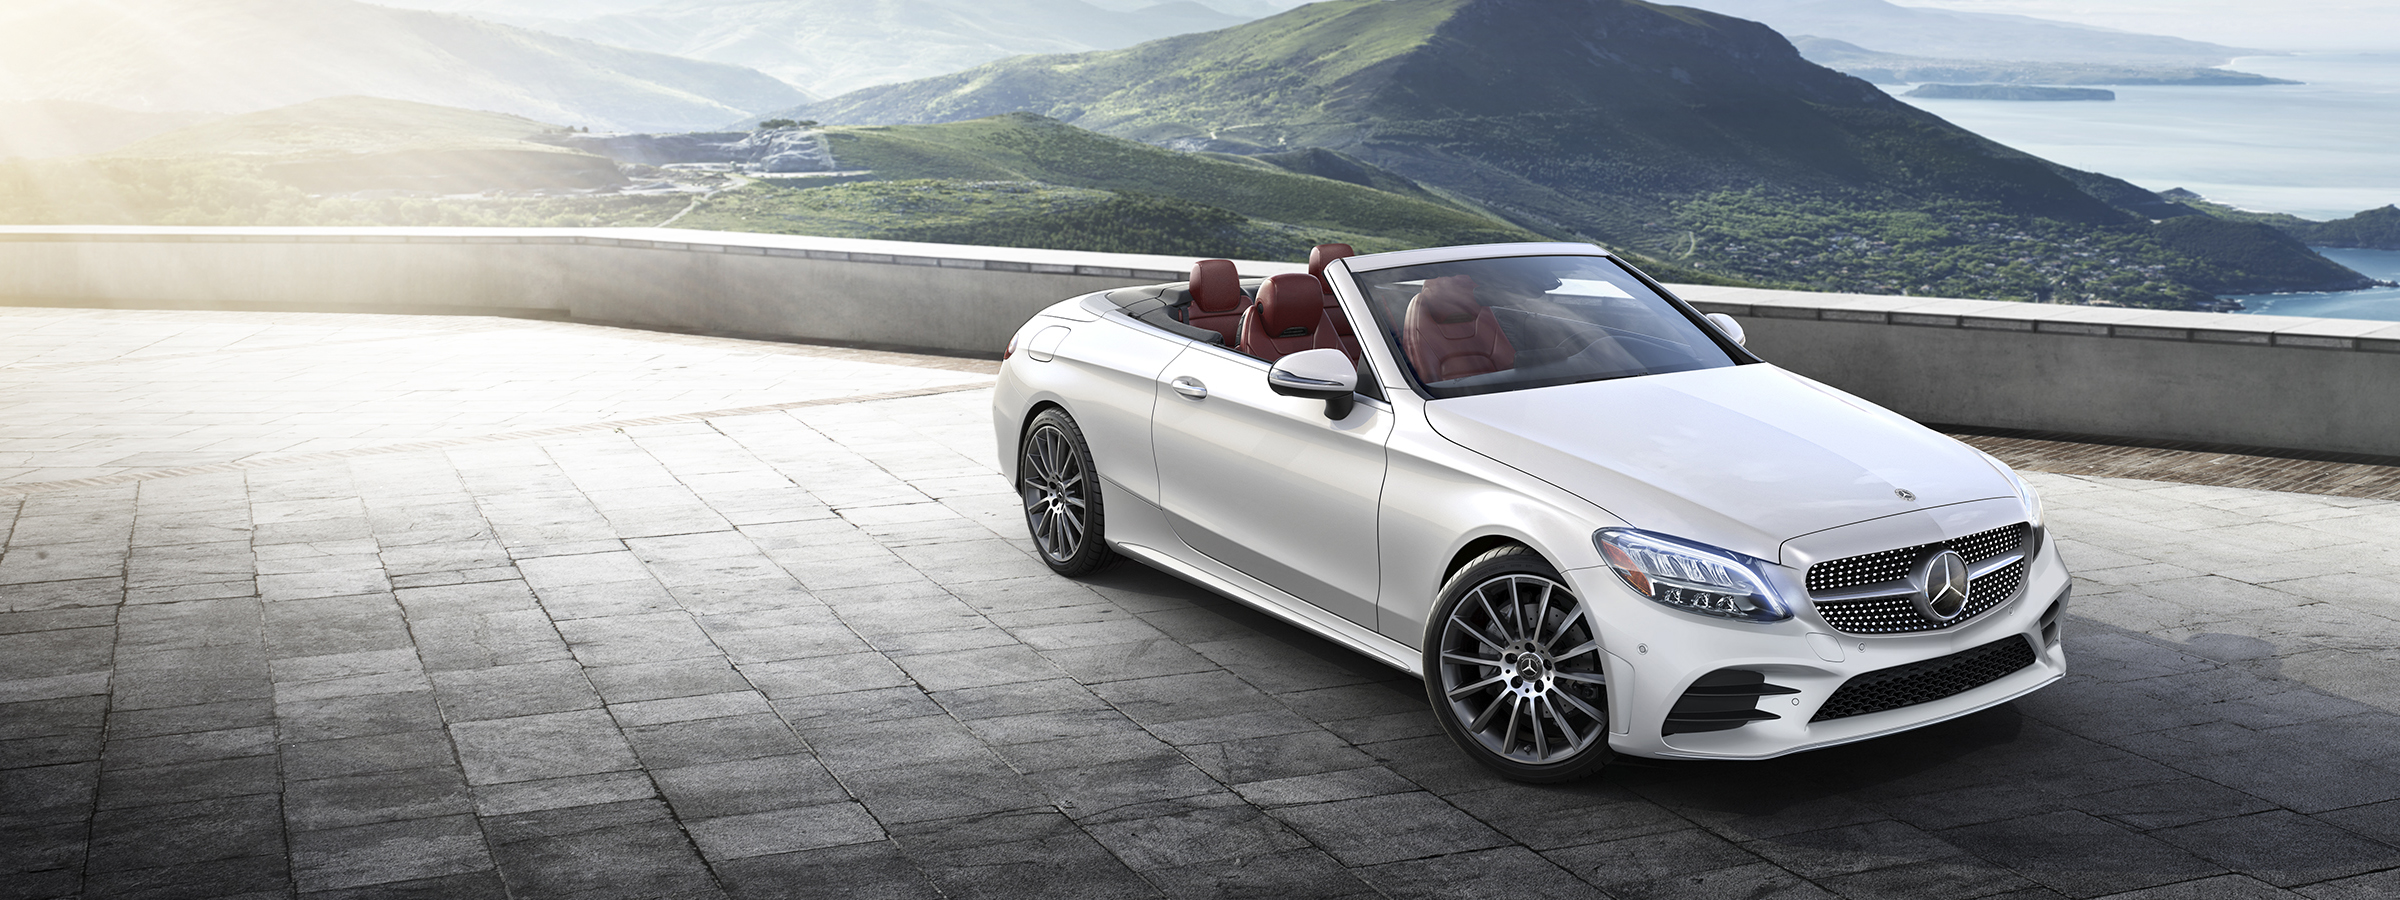 C Class Luxury Performance Cabriolets C 300 C 300 4MATIC